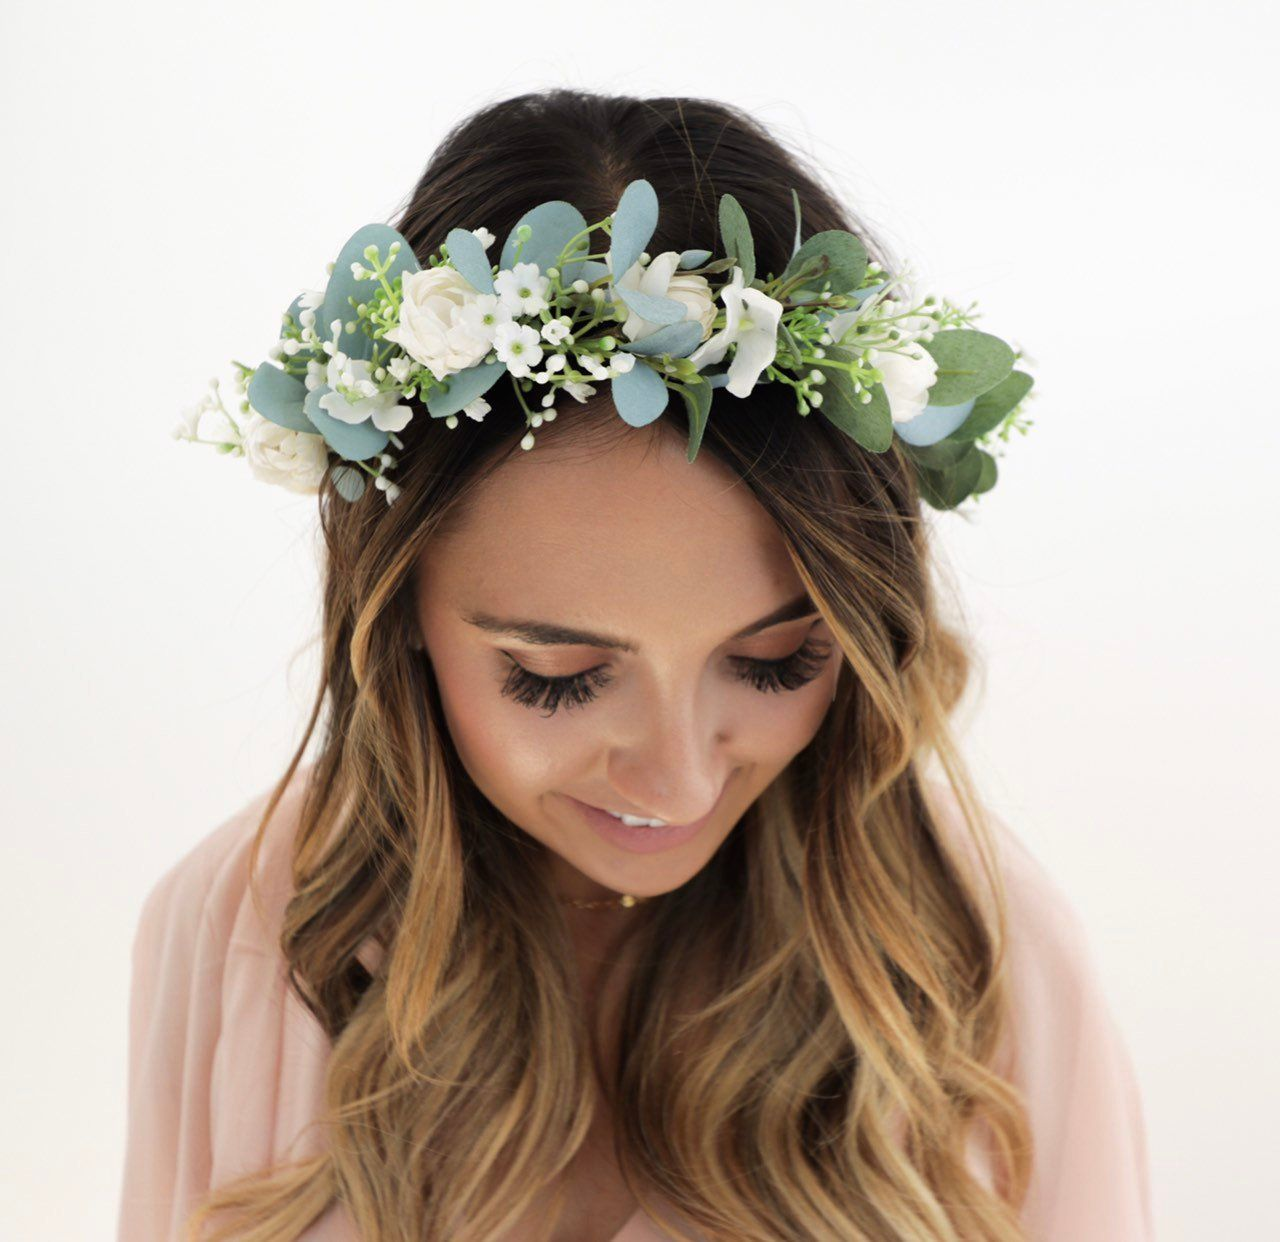 38 Flower Bridal Crowns That Are Perfect For Spring Or Any Season Really Flower Crown Hairstyle Wedding Hair Flowers Flower Crown Bridesmaid